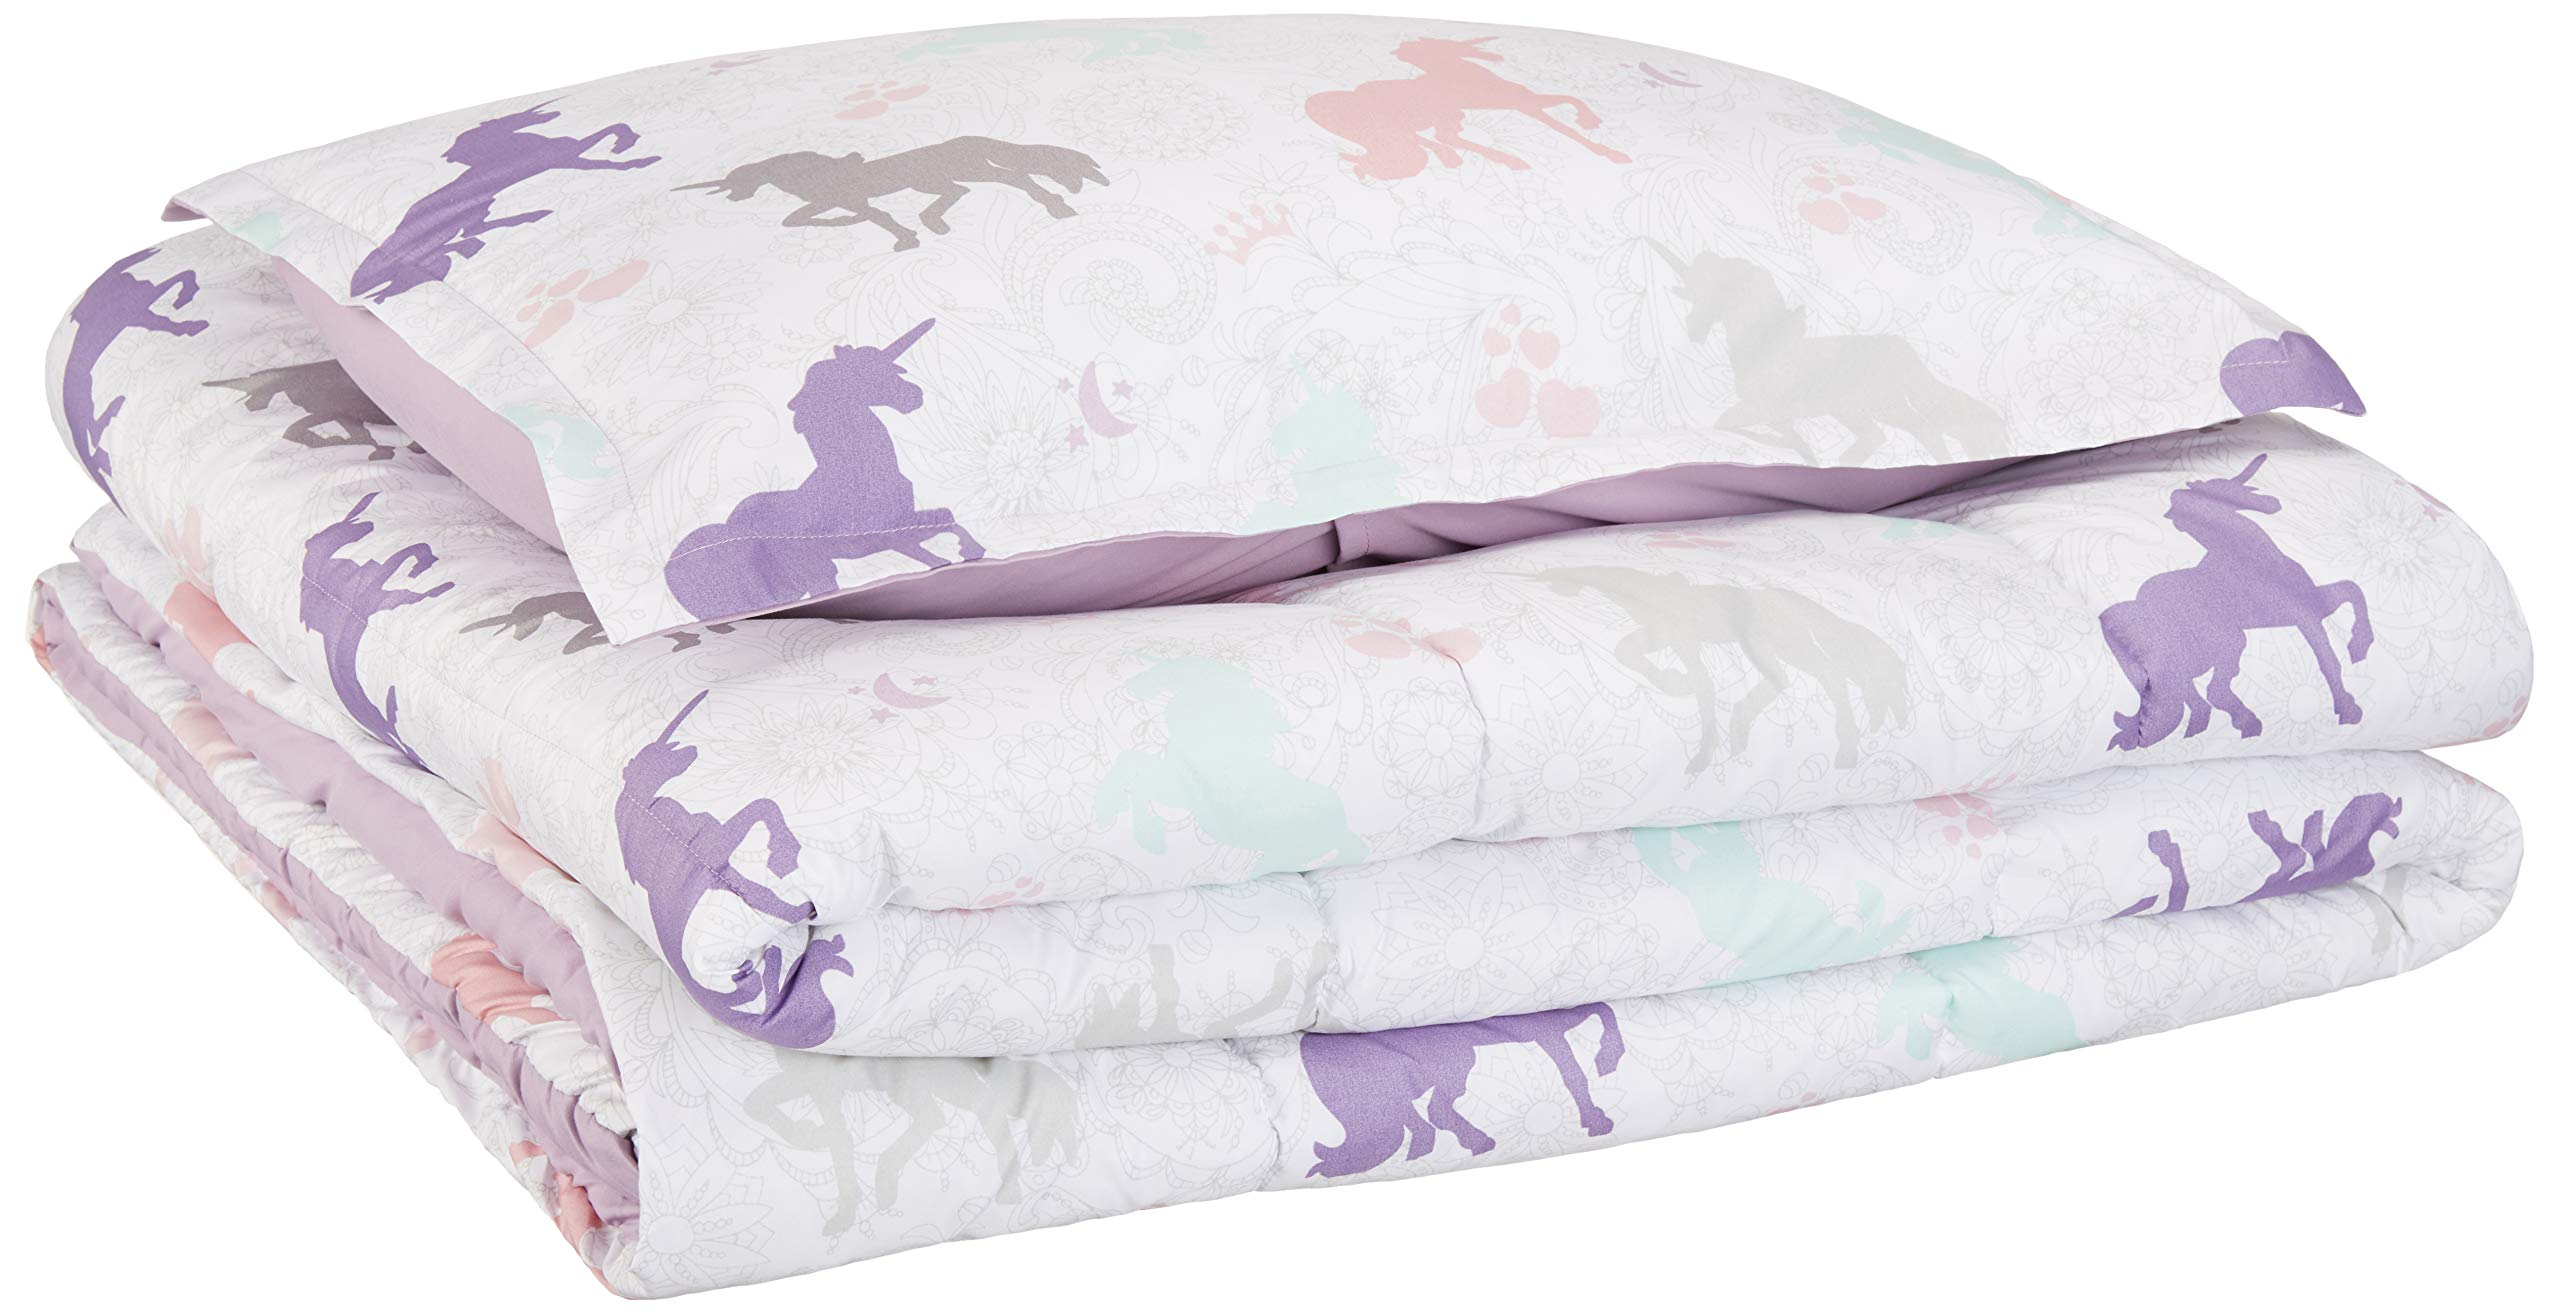 AmazonBasics Kid's Comforter Set - Soft, Easy-Wash Microfiber - Twin, Purple Unicorns